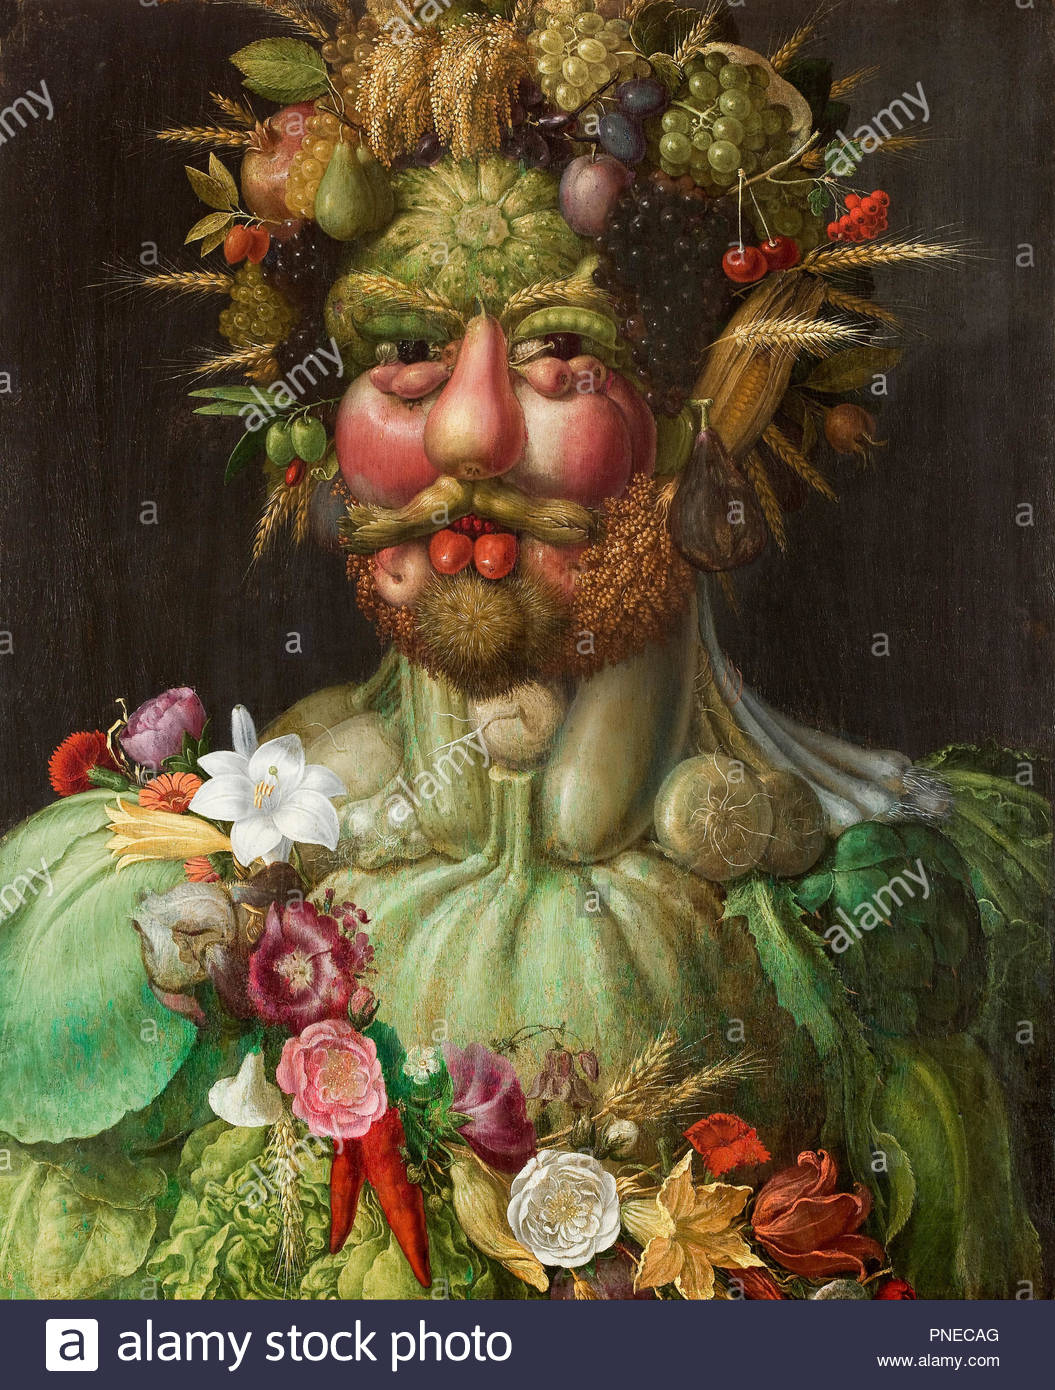 Rudolf II of Hamsburg or Vertumnus. Date/Period: 1590. Drawing. Oil on panel. Height: 680 mm (26.77 in); Width: 560 mm (22.04 in). Author: Giuseppe Arcimboldo. ARCIMBOLDO, GIUSEPPE. - Stock Image